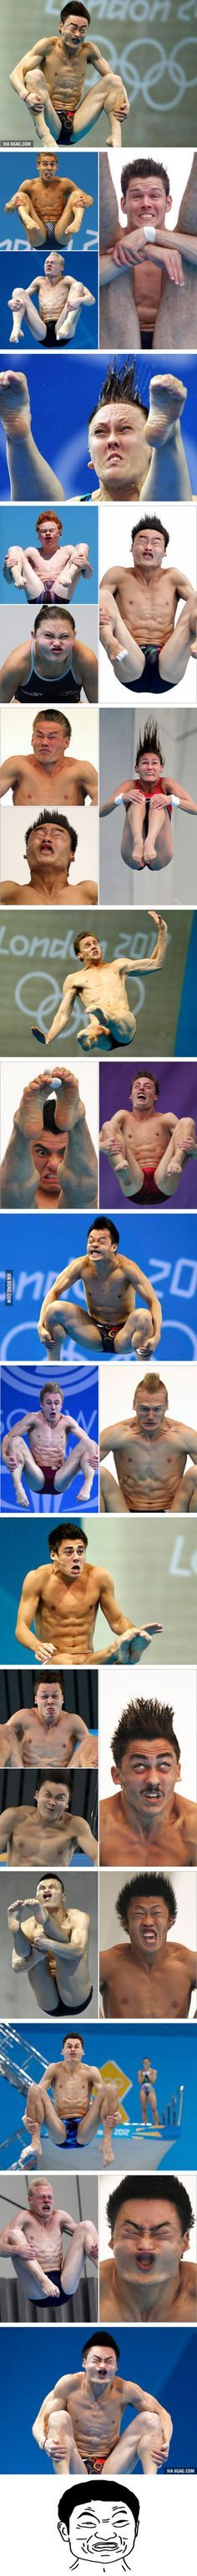 Faces of Olympic Divers